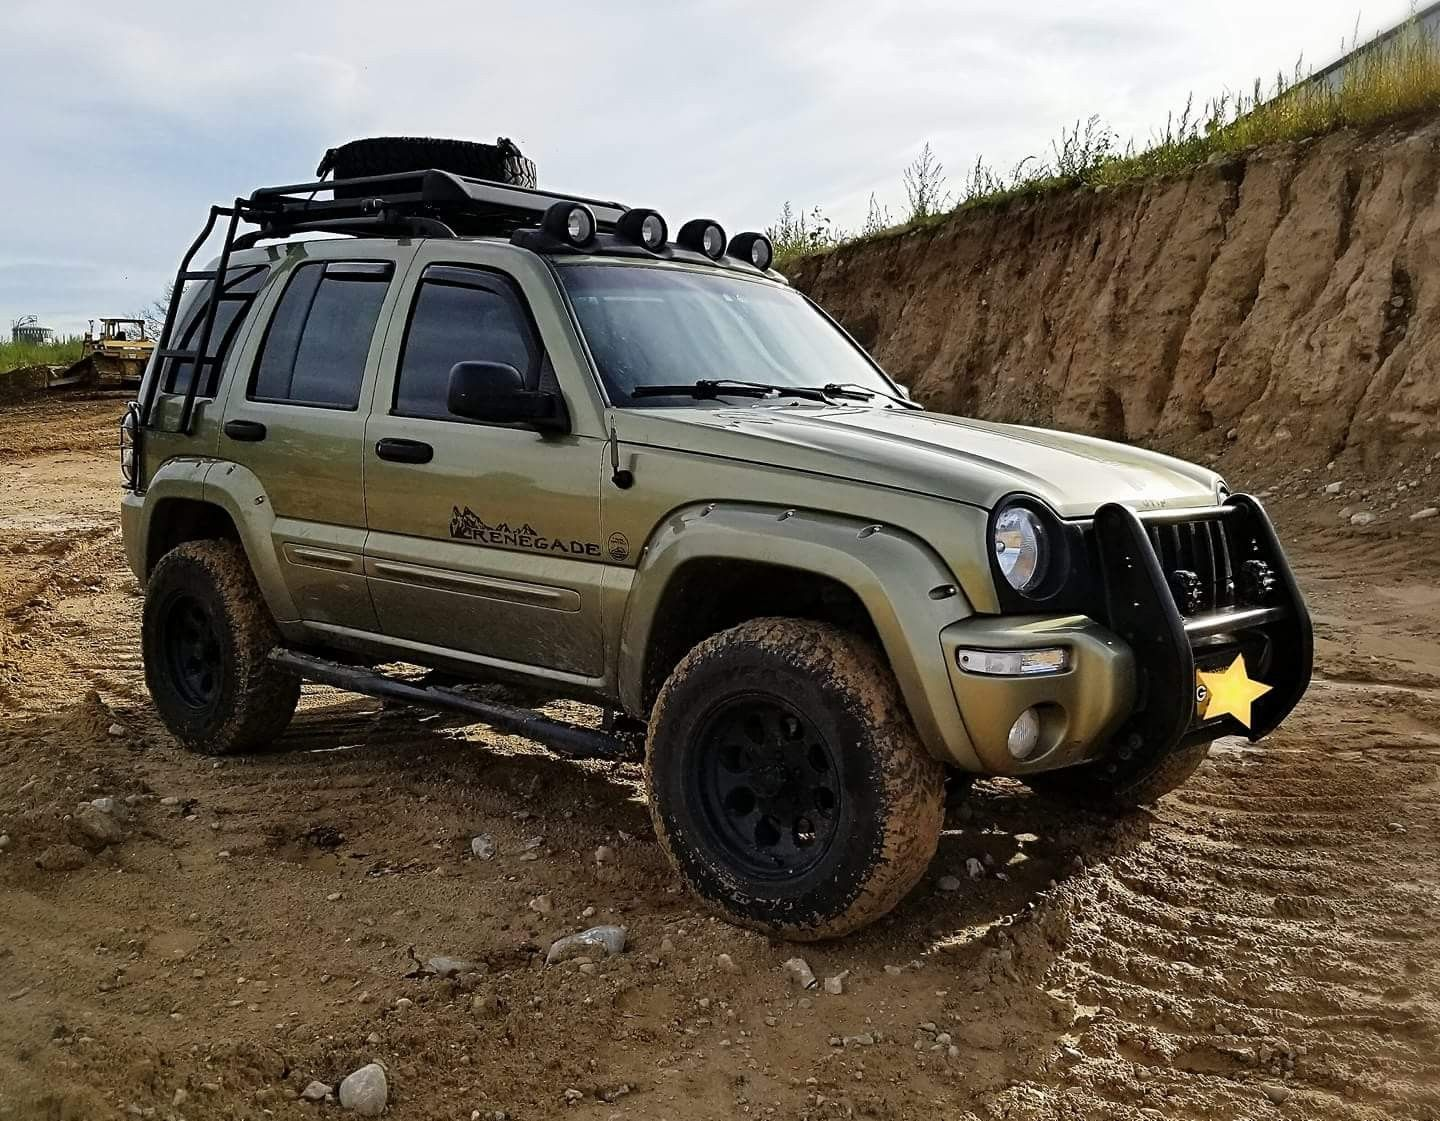 Pin By Mike On Jeepliberty Jeep Liberty Jeep Liberty Renegade Jeep Life